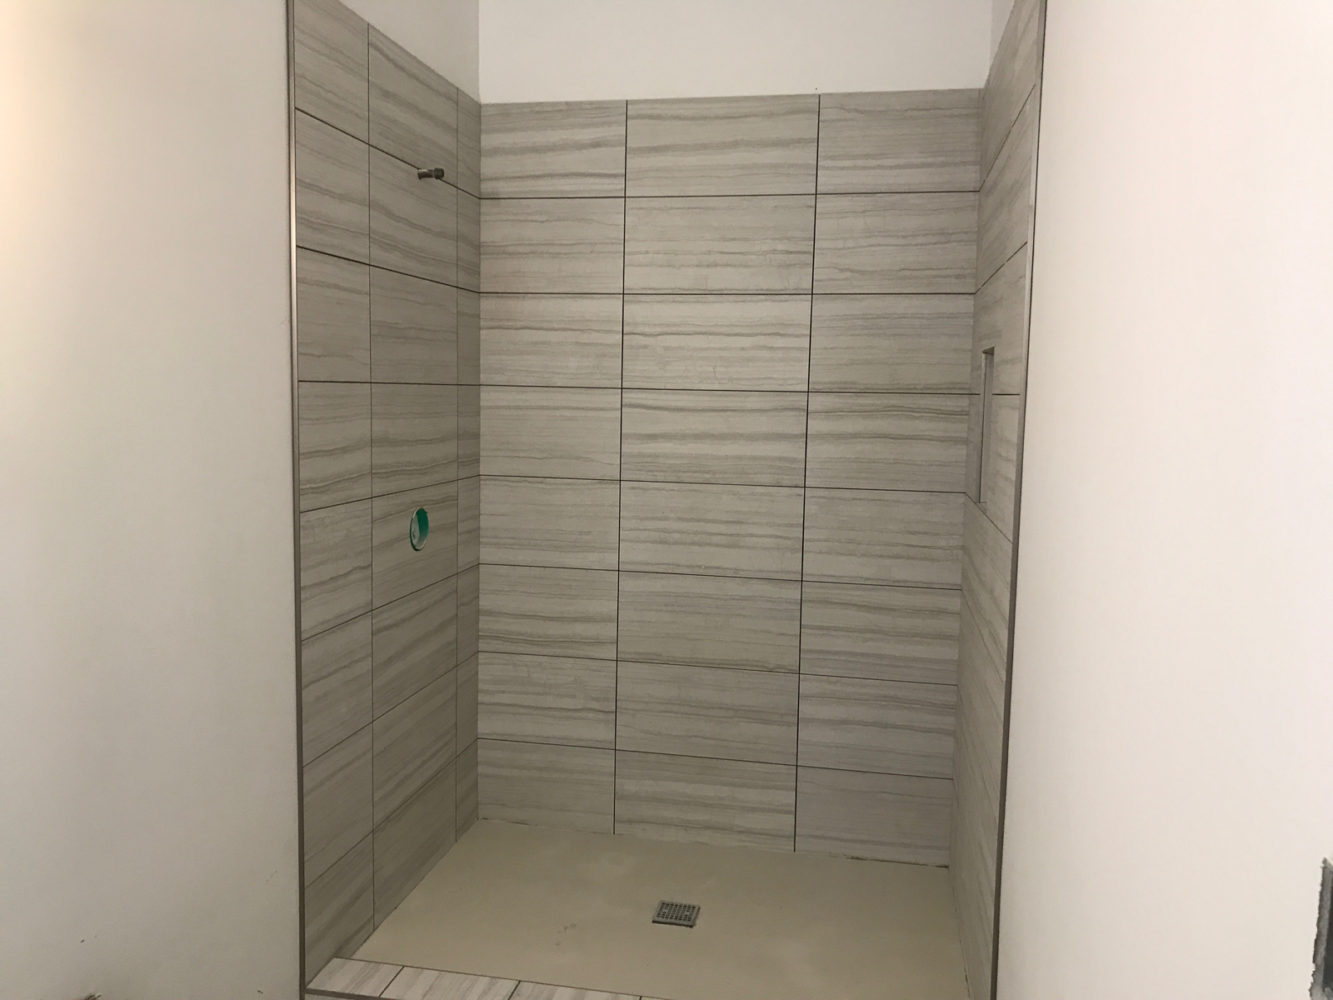 The Tile Work Has Started At Our New Construction In Lincoln Park